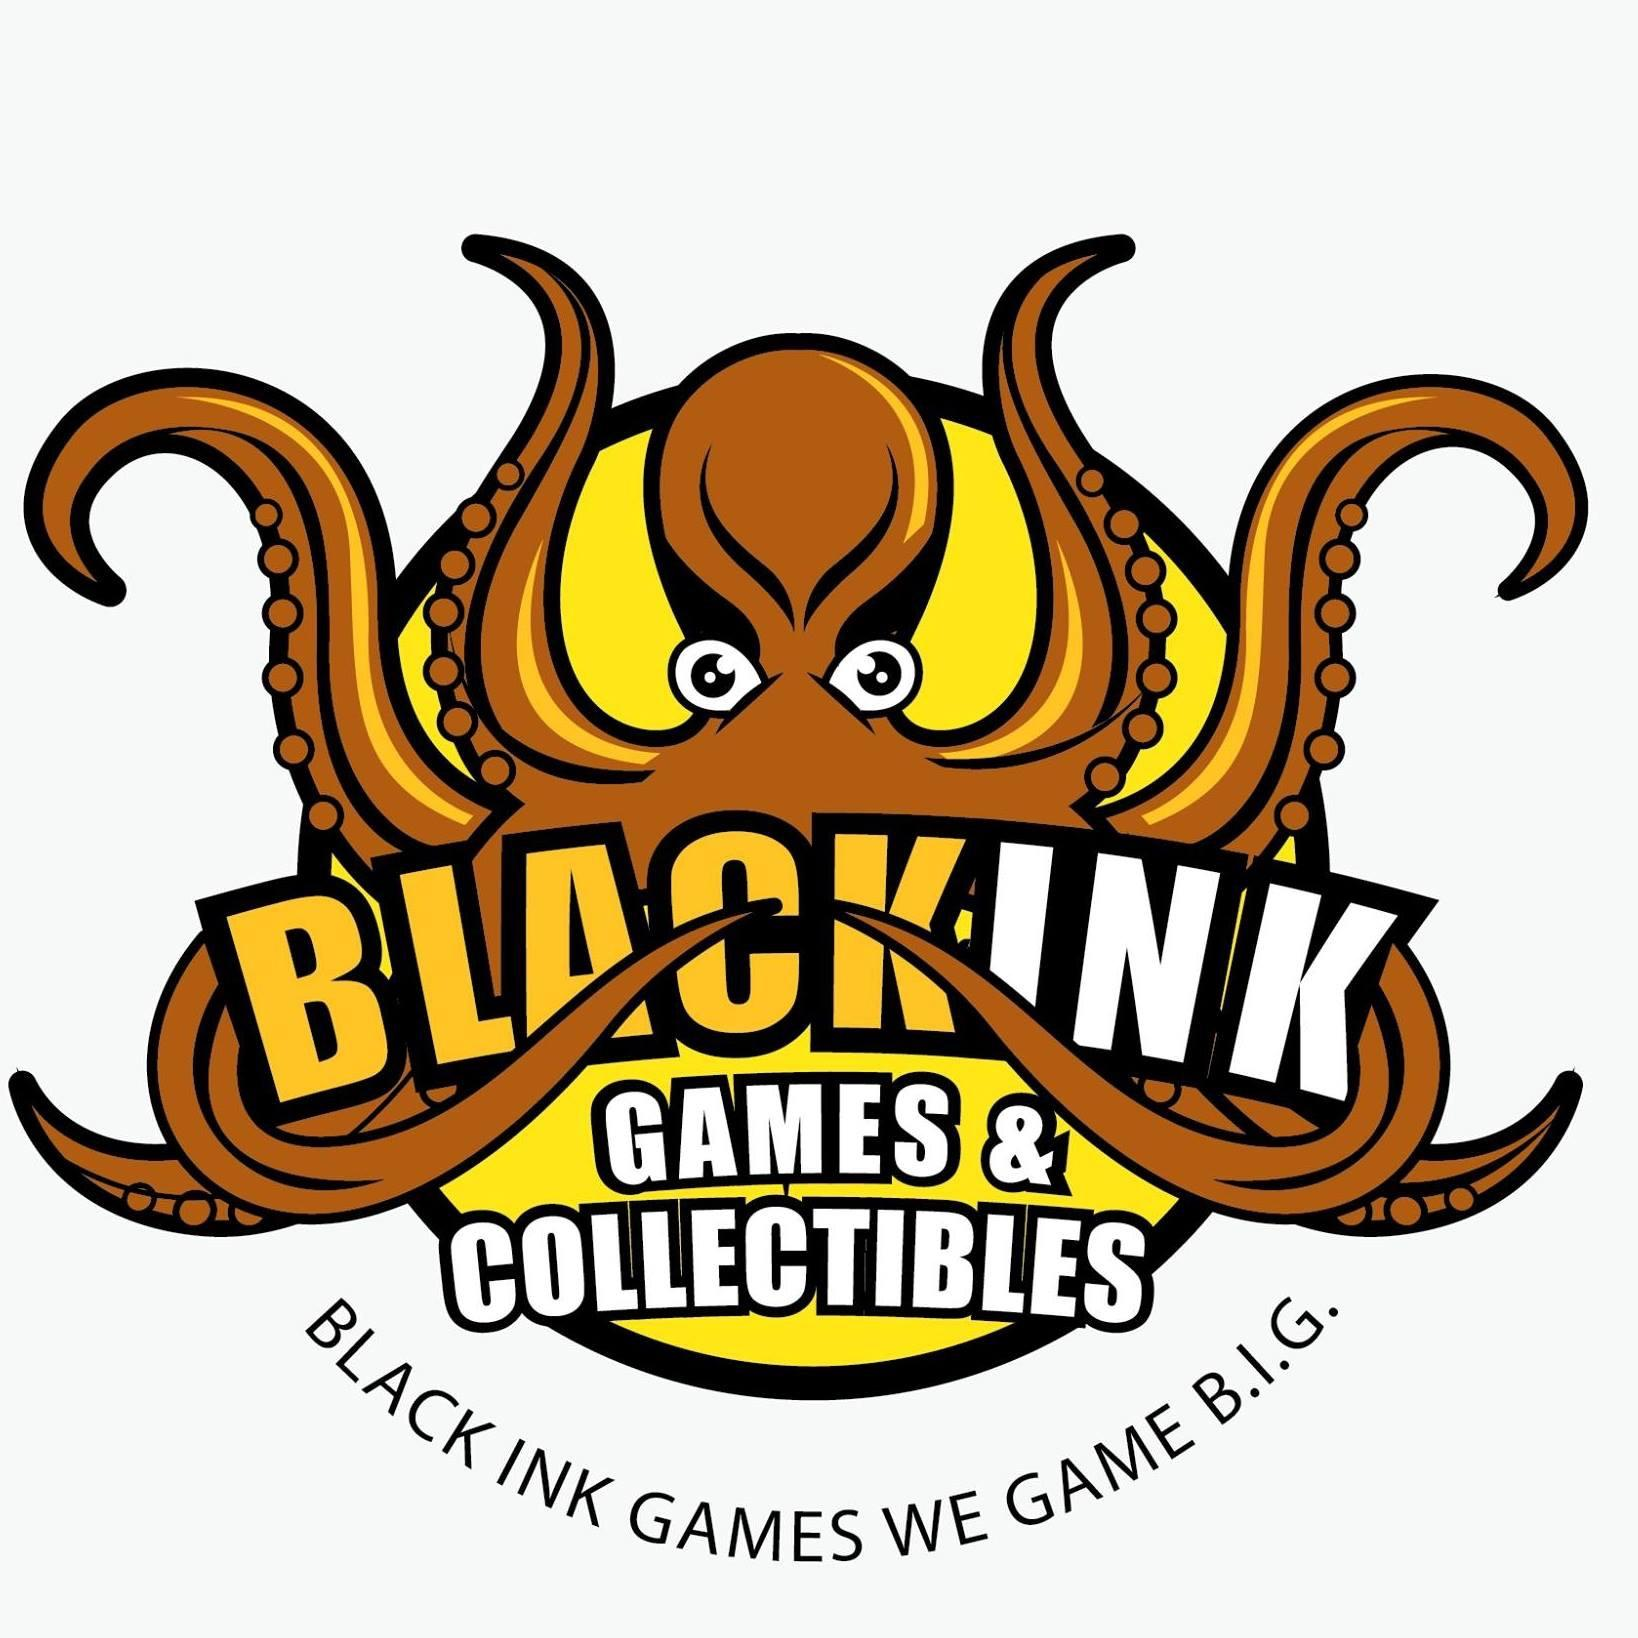 Black Ink Games & Collectibles